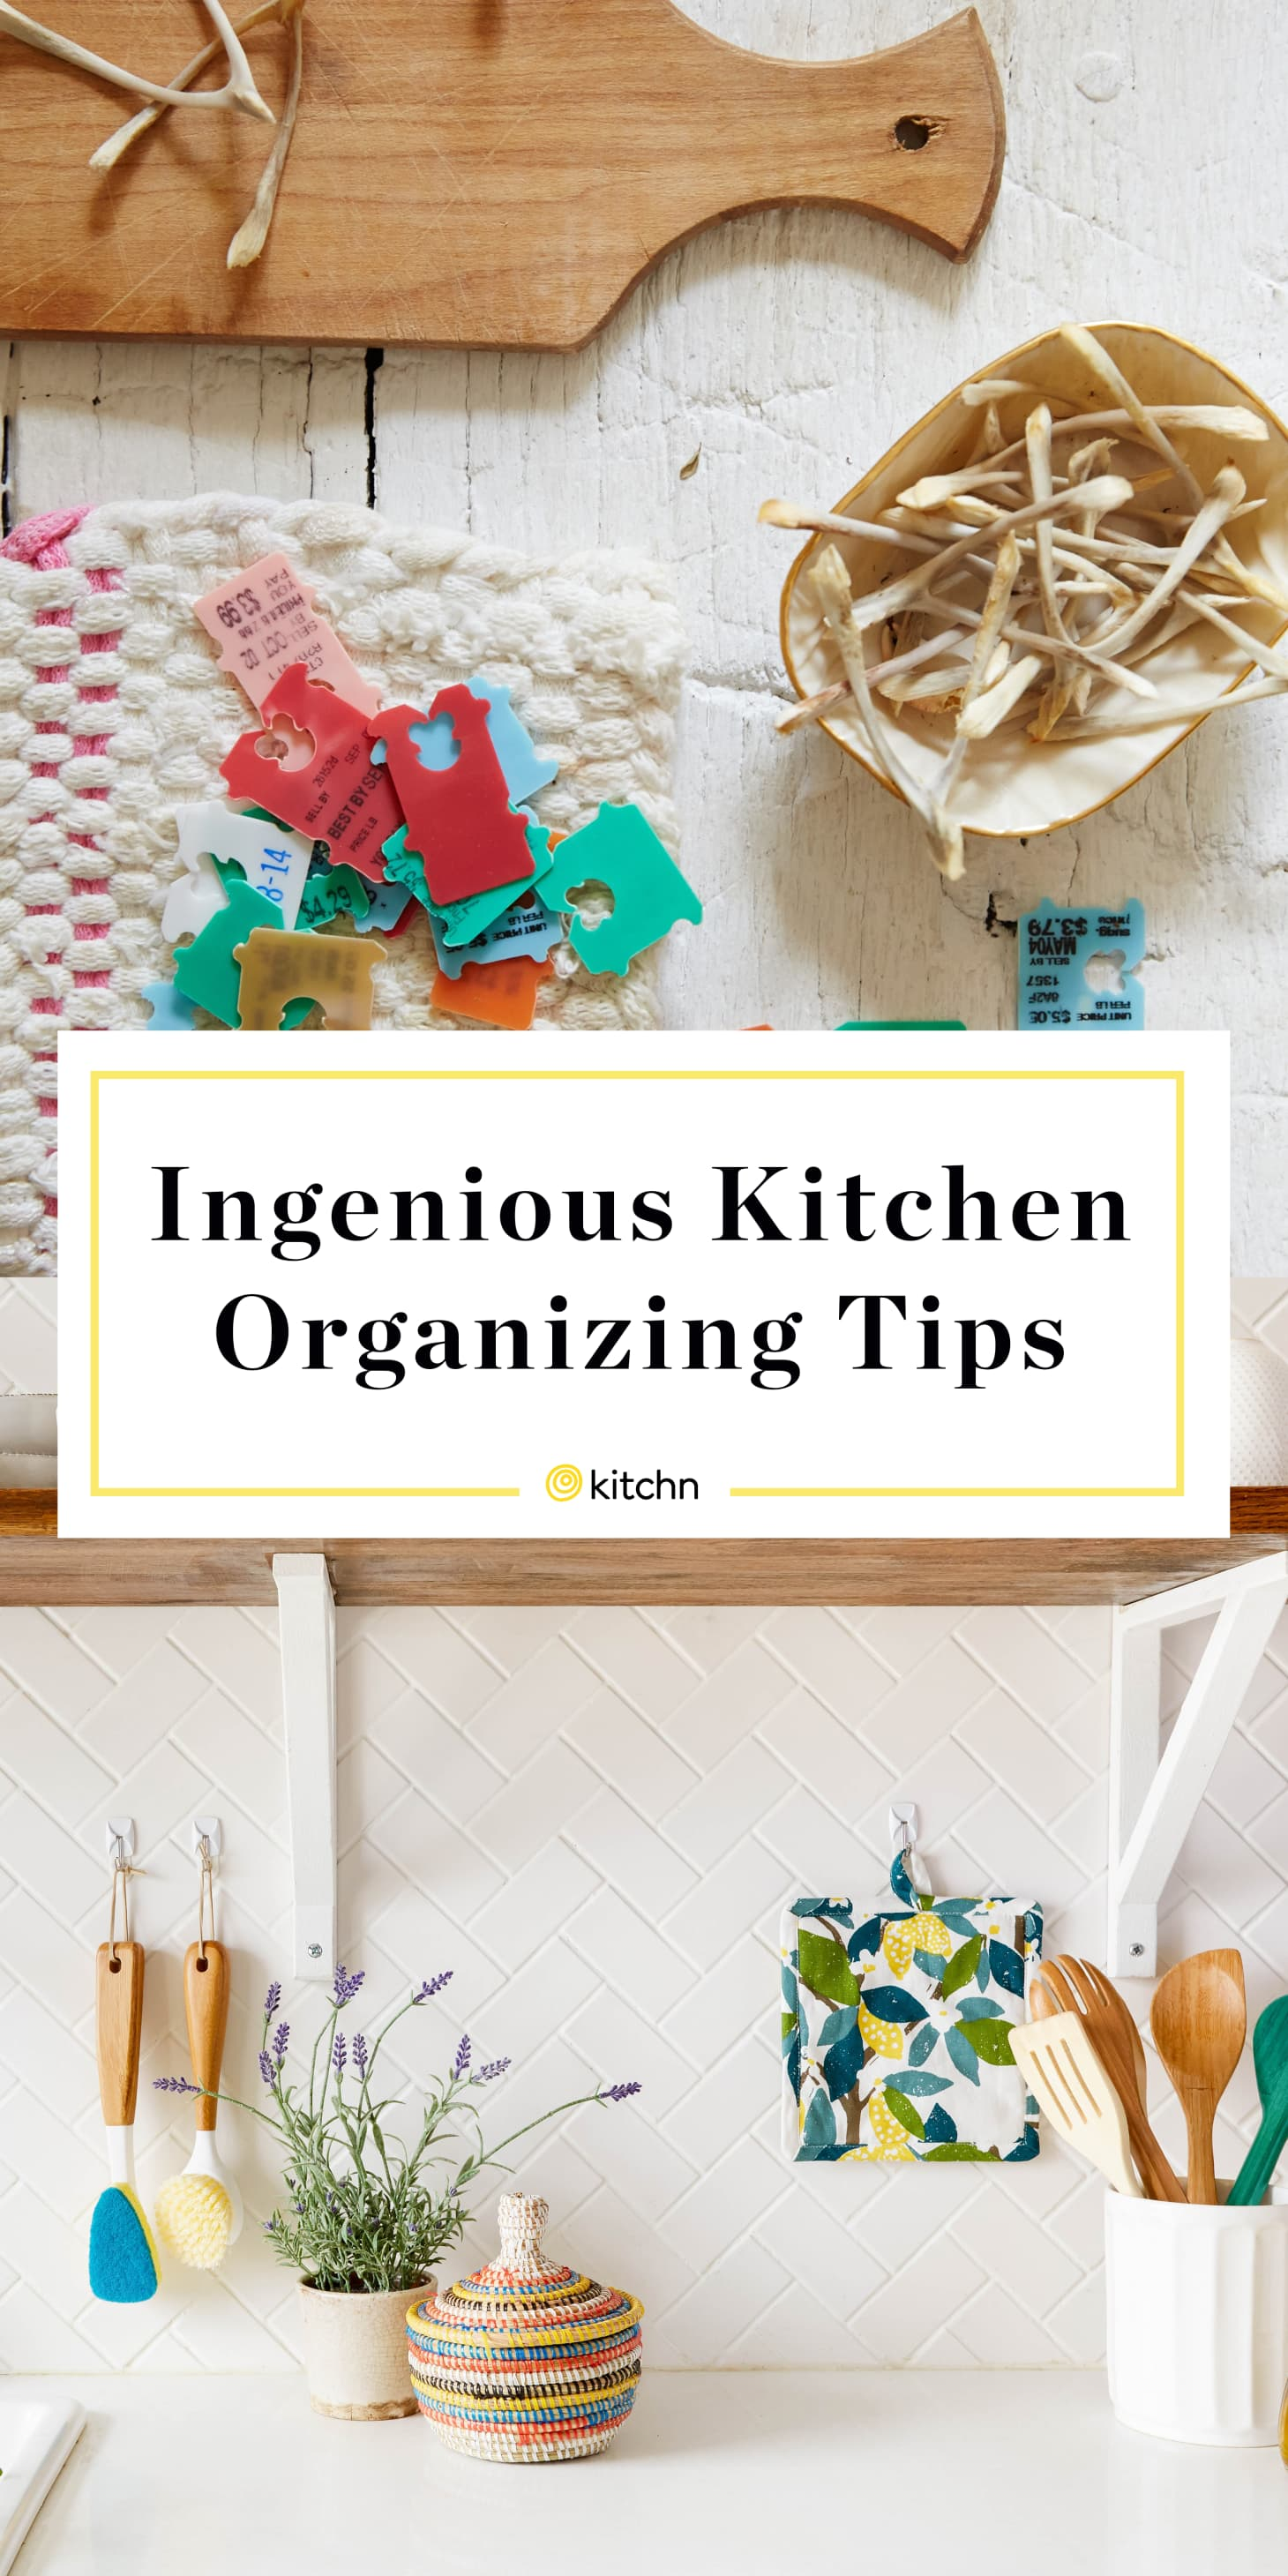 Smart Kitchen Organizing Hacks - From Kitchn Readers | Kitchn